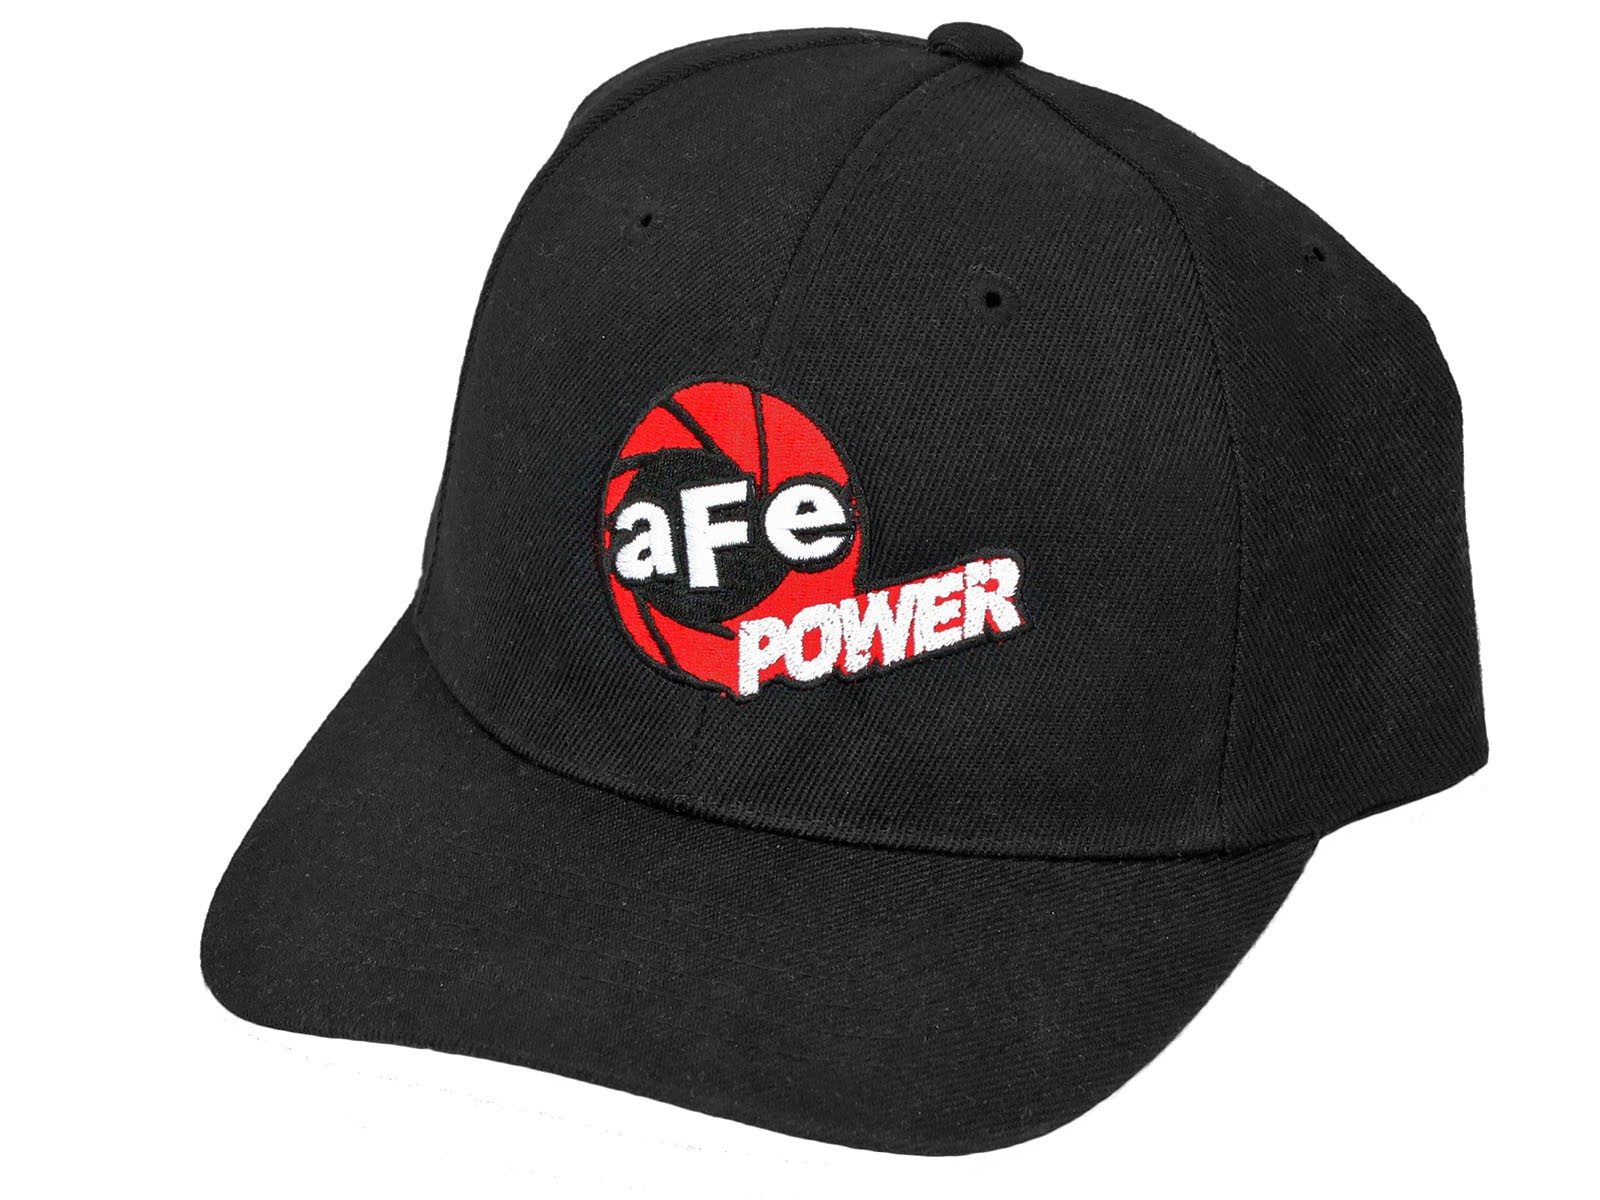 aFe POWER 40-10043 Apparel; Hat, aFe Logo Embroidery (Otto)